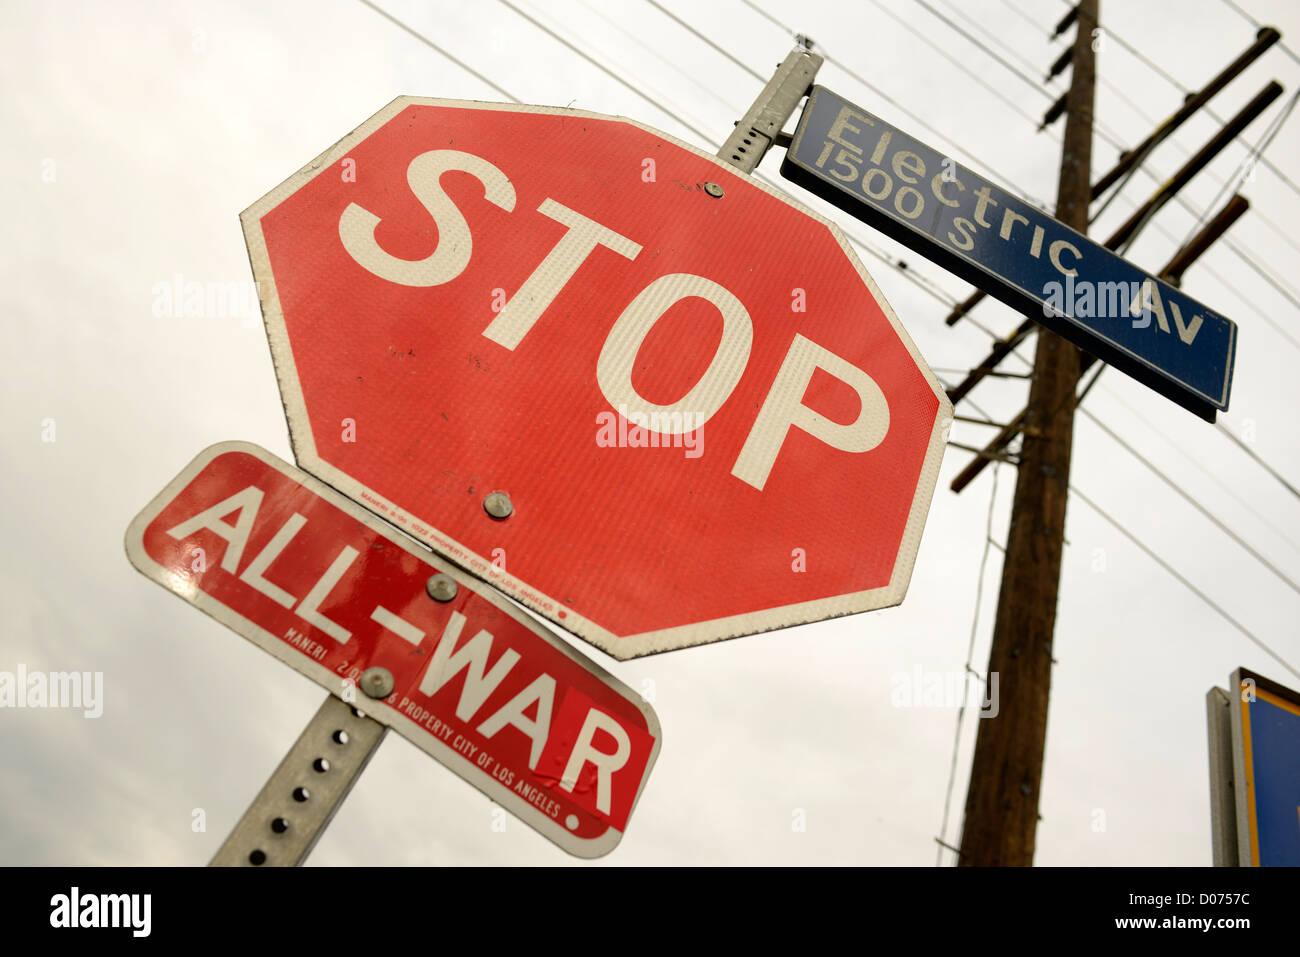 Guerres stop sign los angeles Photo Stock